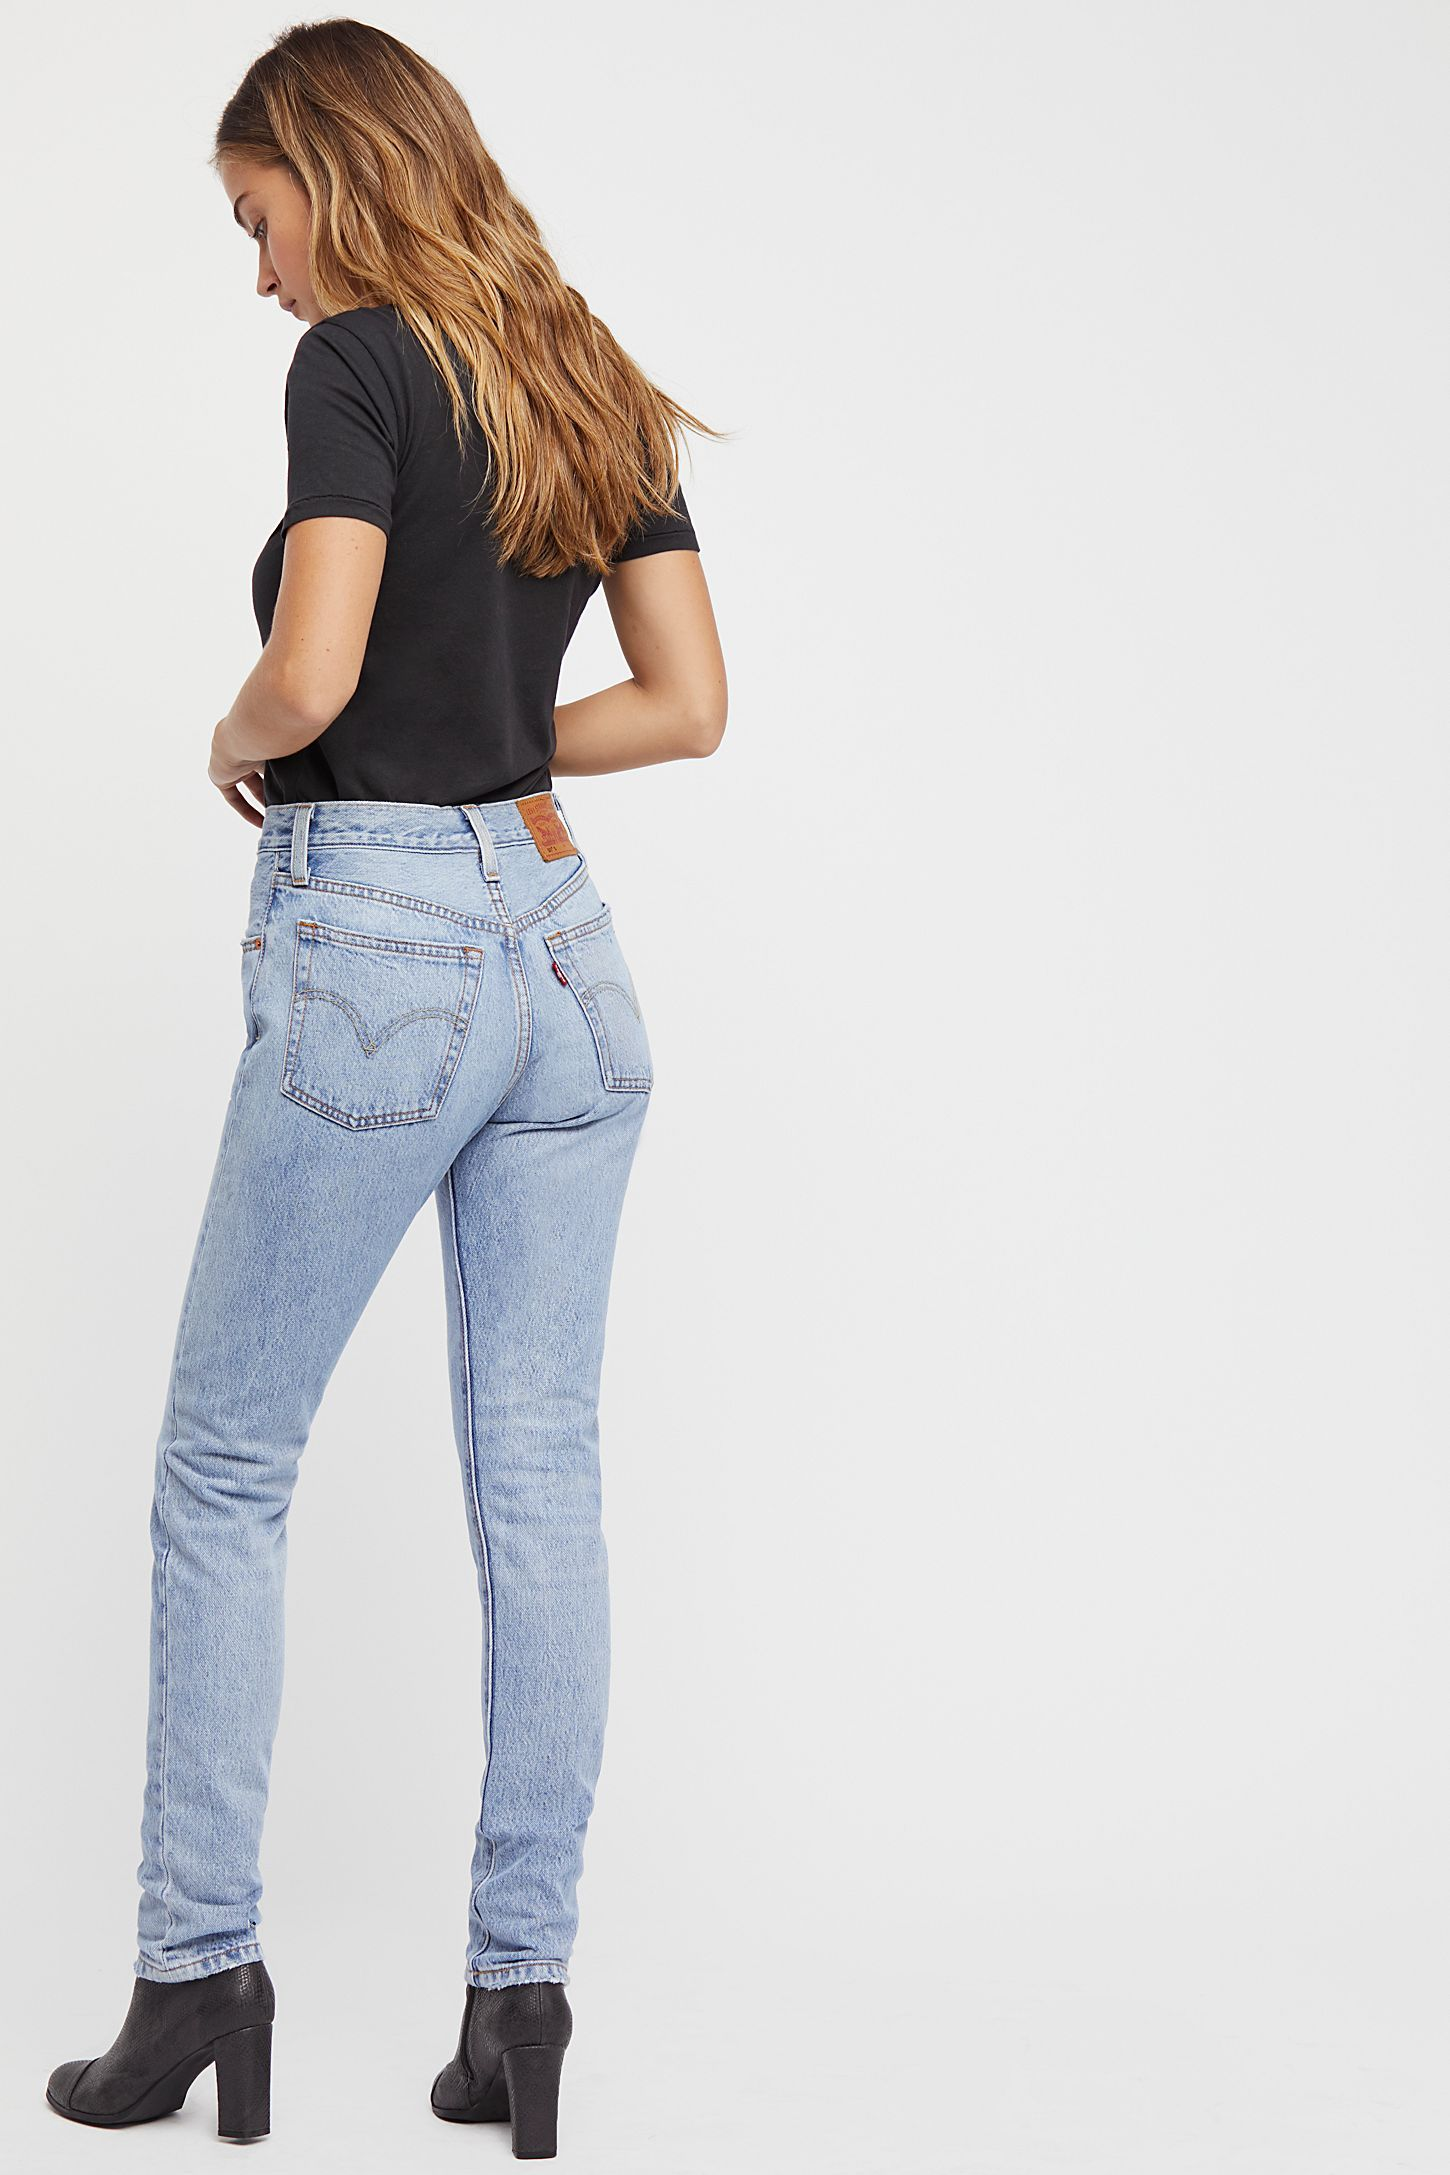 Designed Jeans For Women Skinny Jeans Straight Leg Jeans Ponte Trousers Ankara Jackets And Trousers Rupert Bear Trousers Valentino Jeans